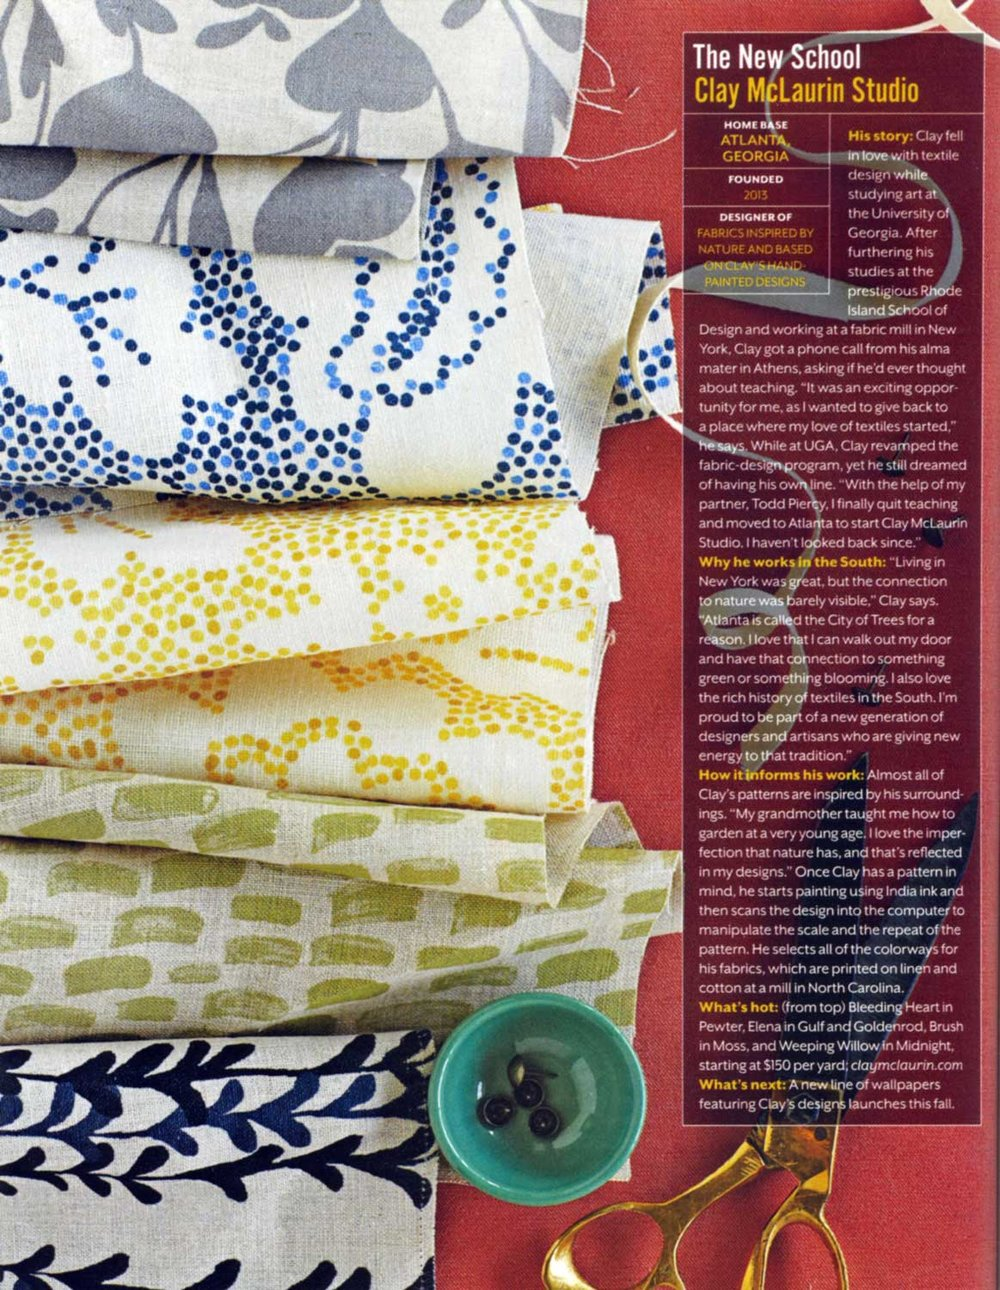 ClayMcLaurinStudio_Southern_Living_2014__article_web.jpg